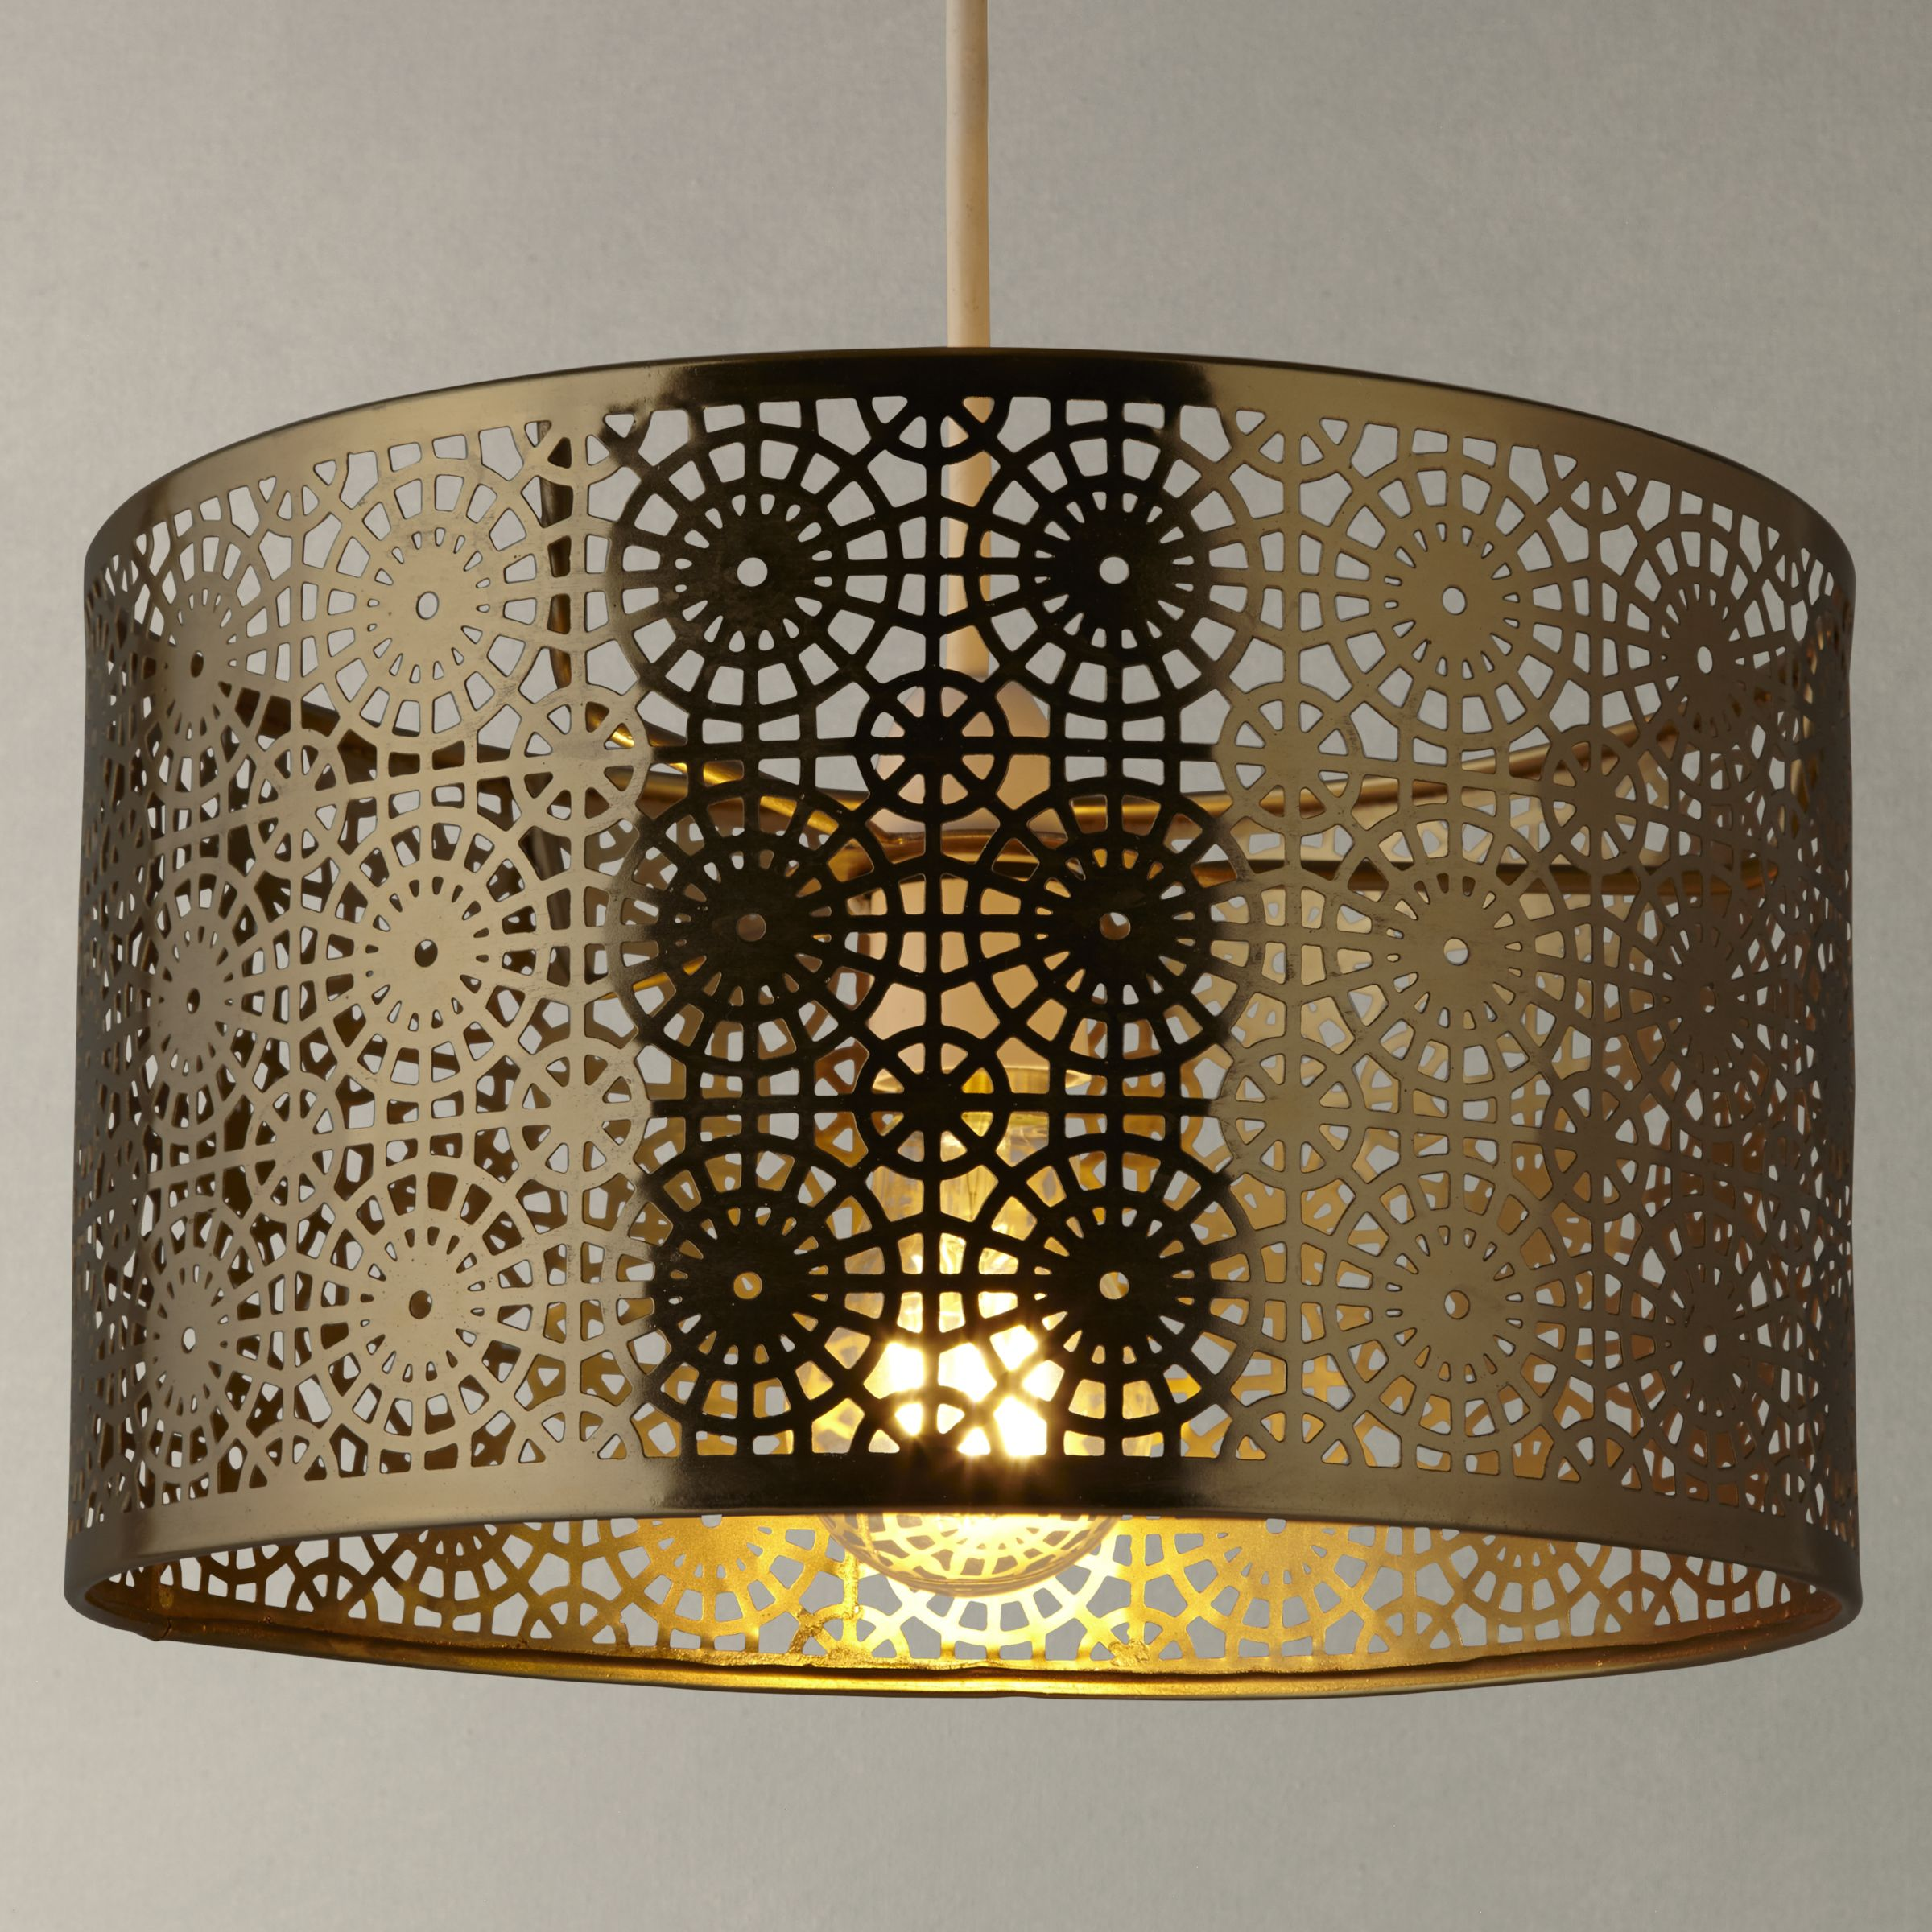 John Lewis Wall Lamp Shades : Buy John Lewis Eila Cutwork Shade John Lewis